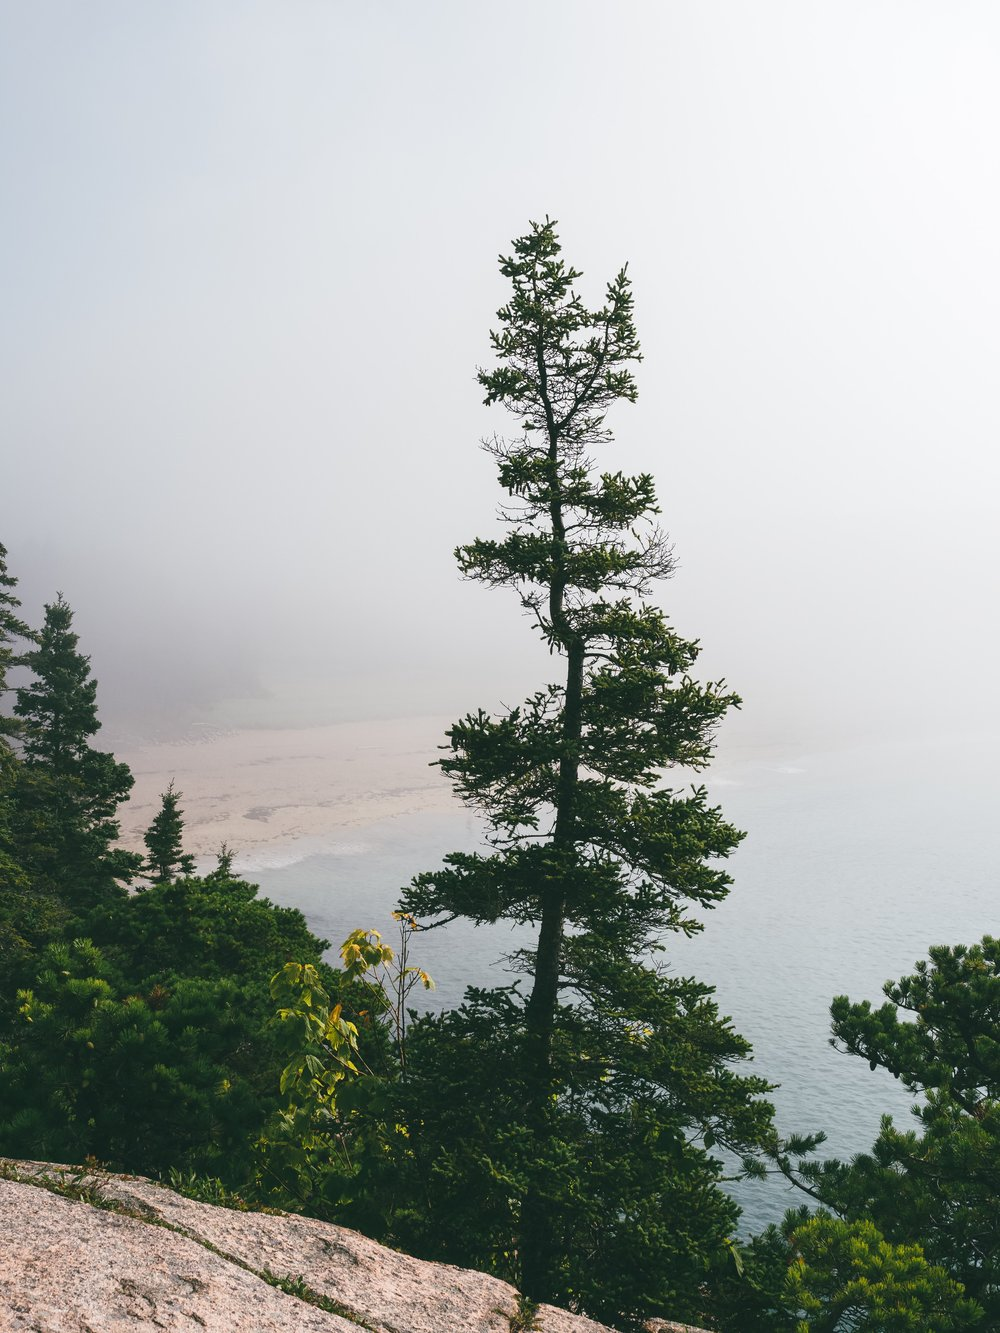 Sand Beach through the fog.